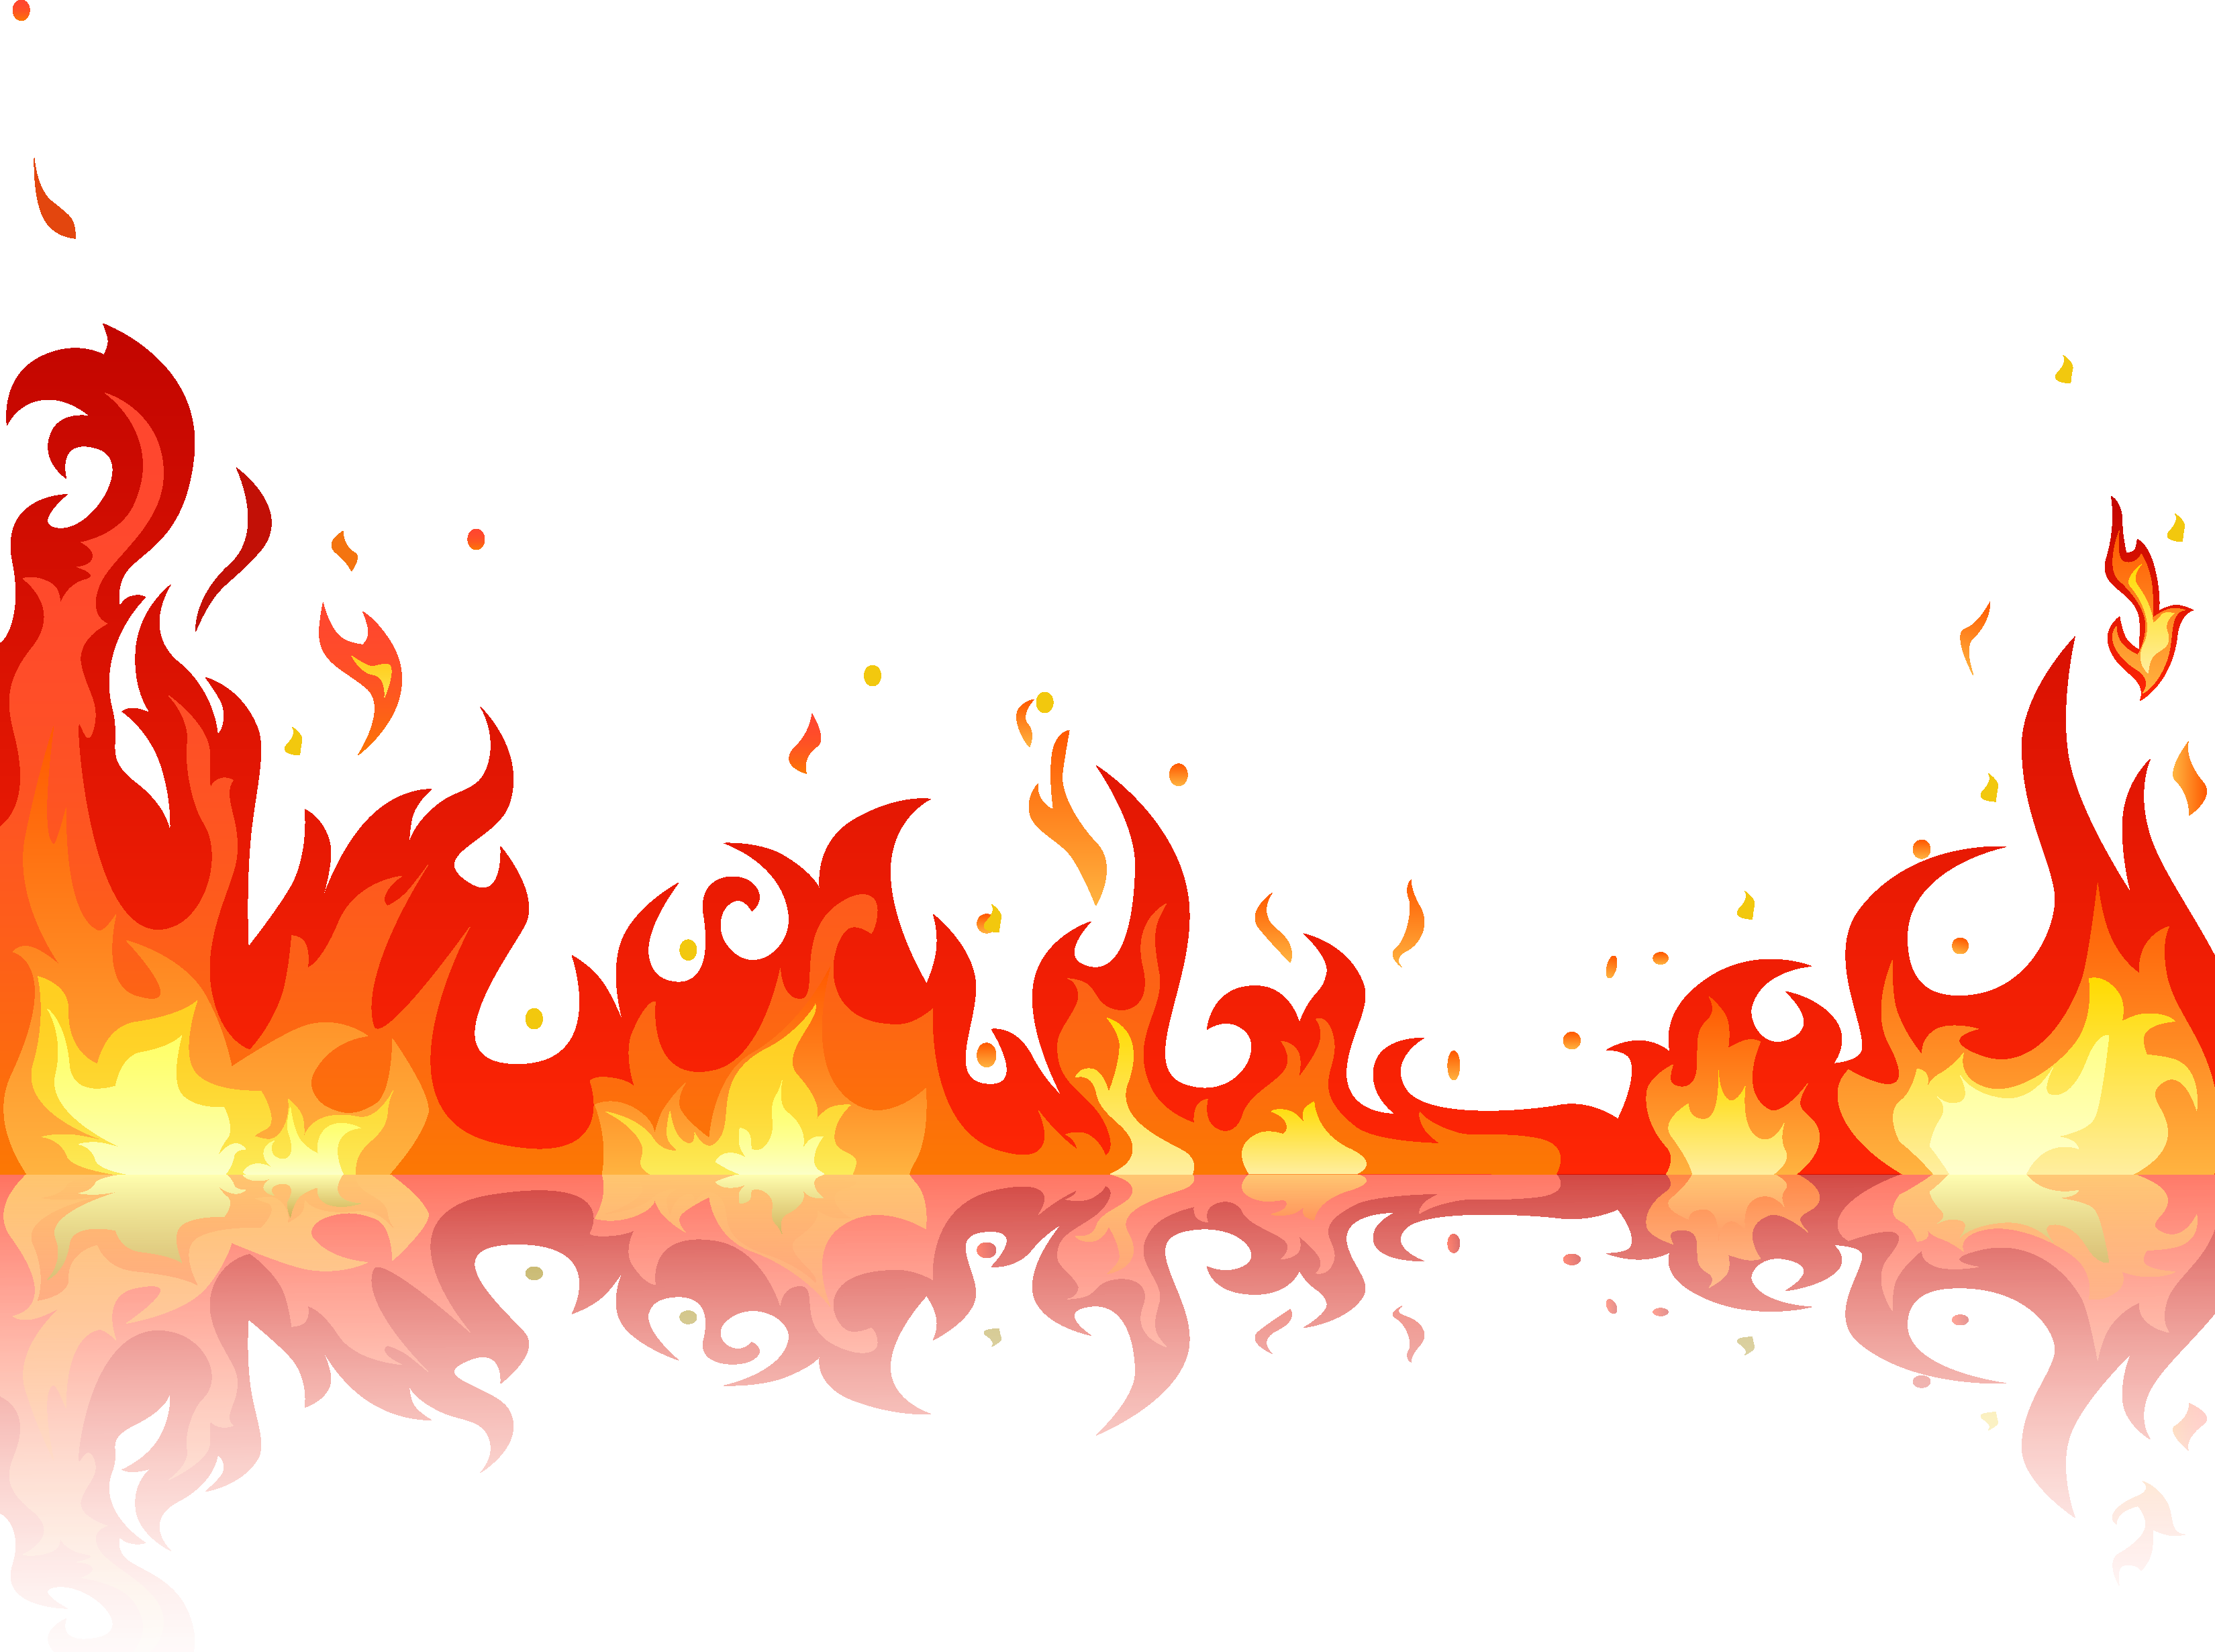 Frame clipart fire. Collection of free flaming